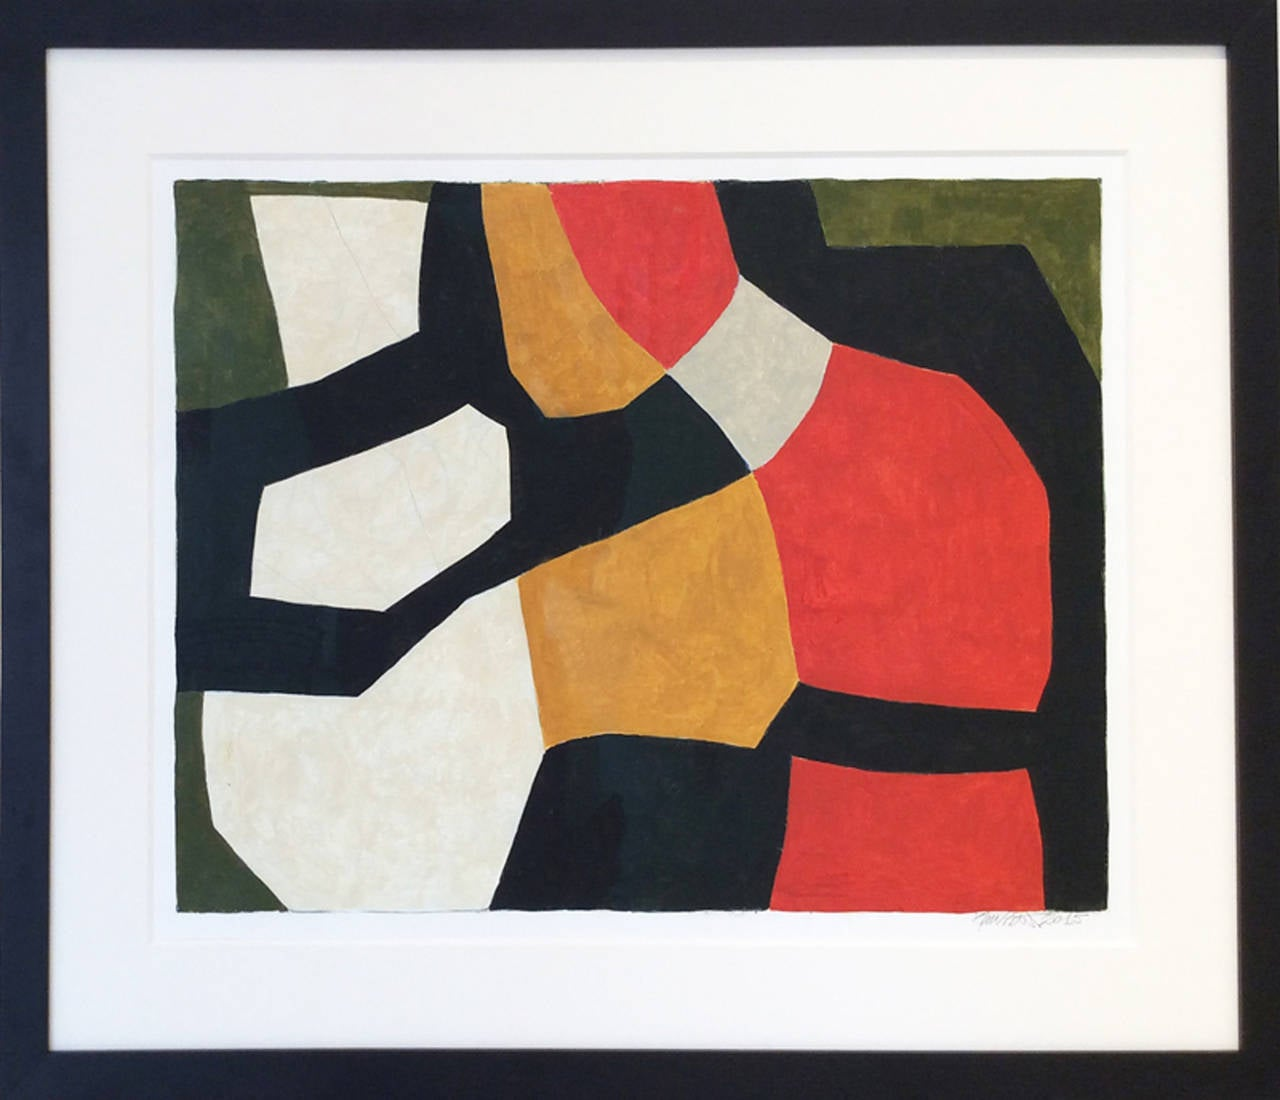 Vase: Abstract Mid Century Modern Painting in Red, Orange, Black & Beige, Framed For Sale 1